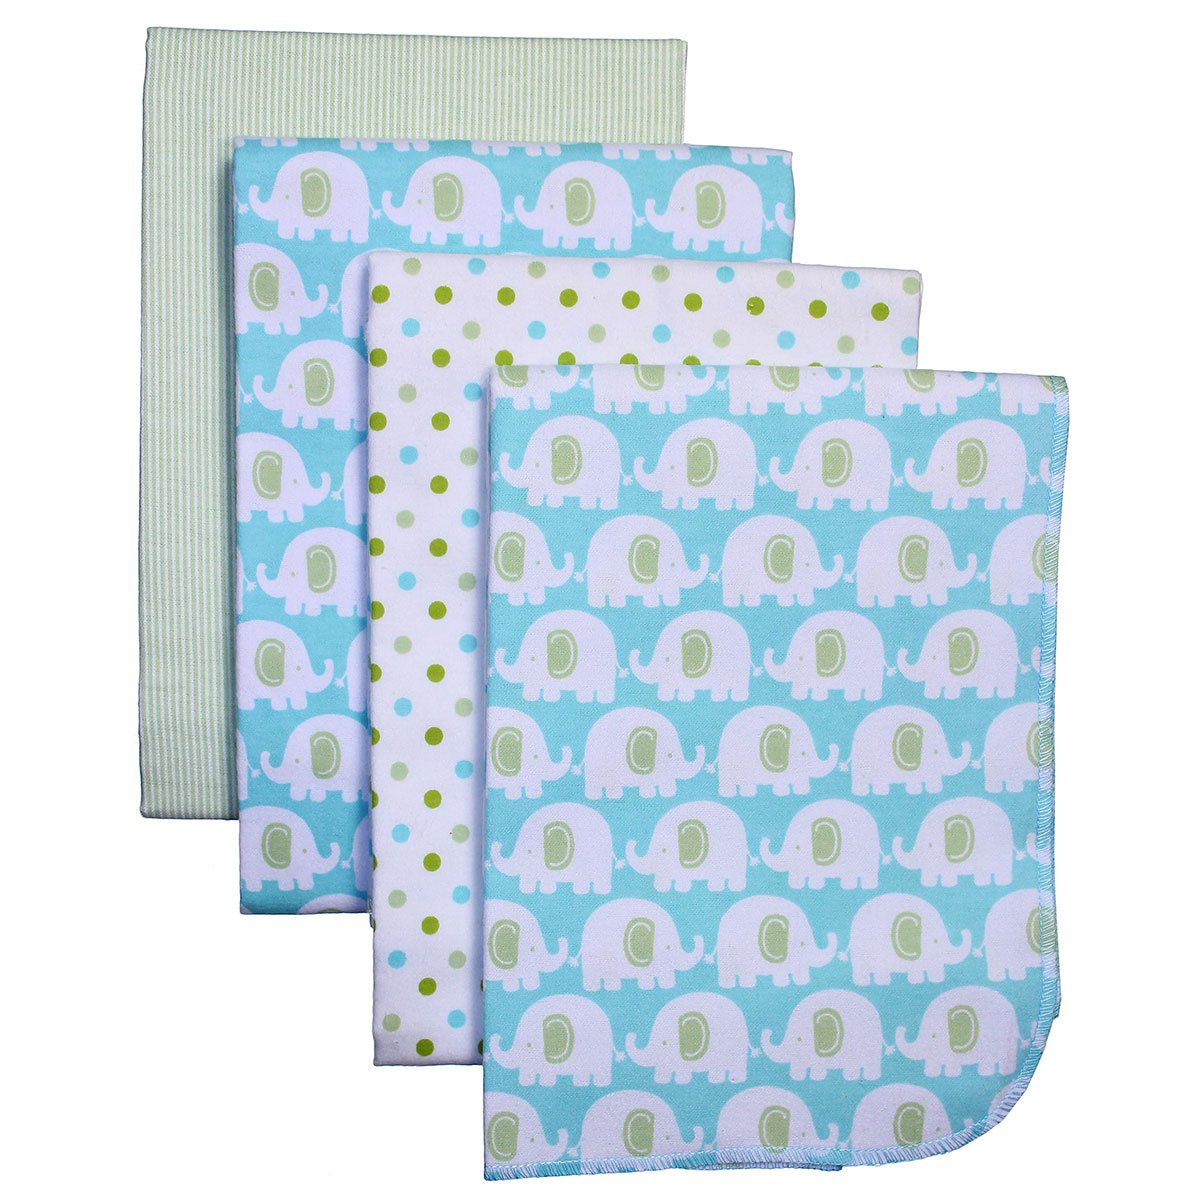 Carters Flannel Receiving Blankets Elephant Image 1